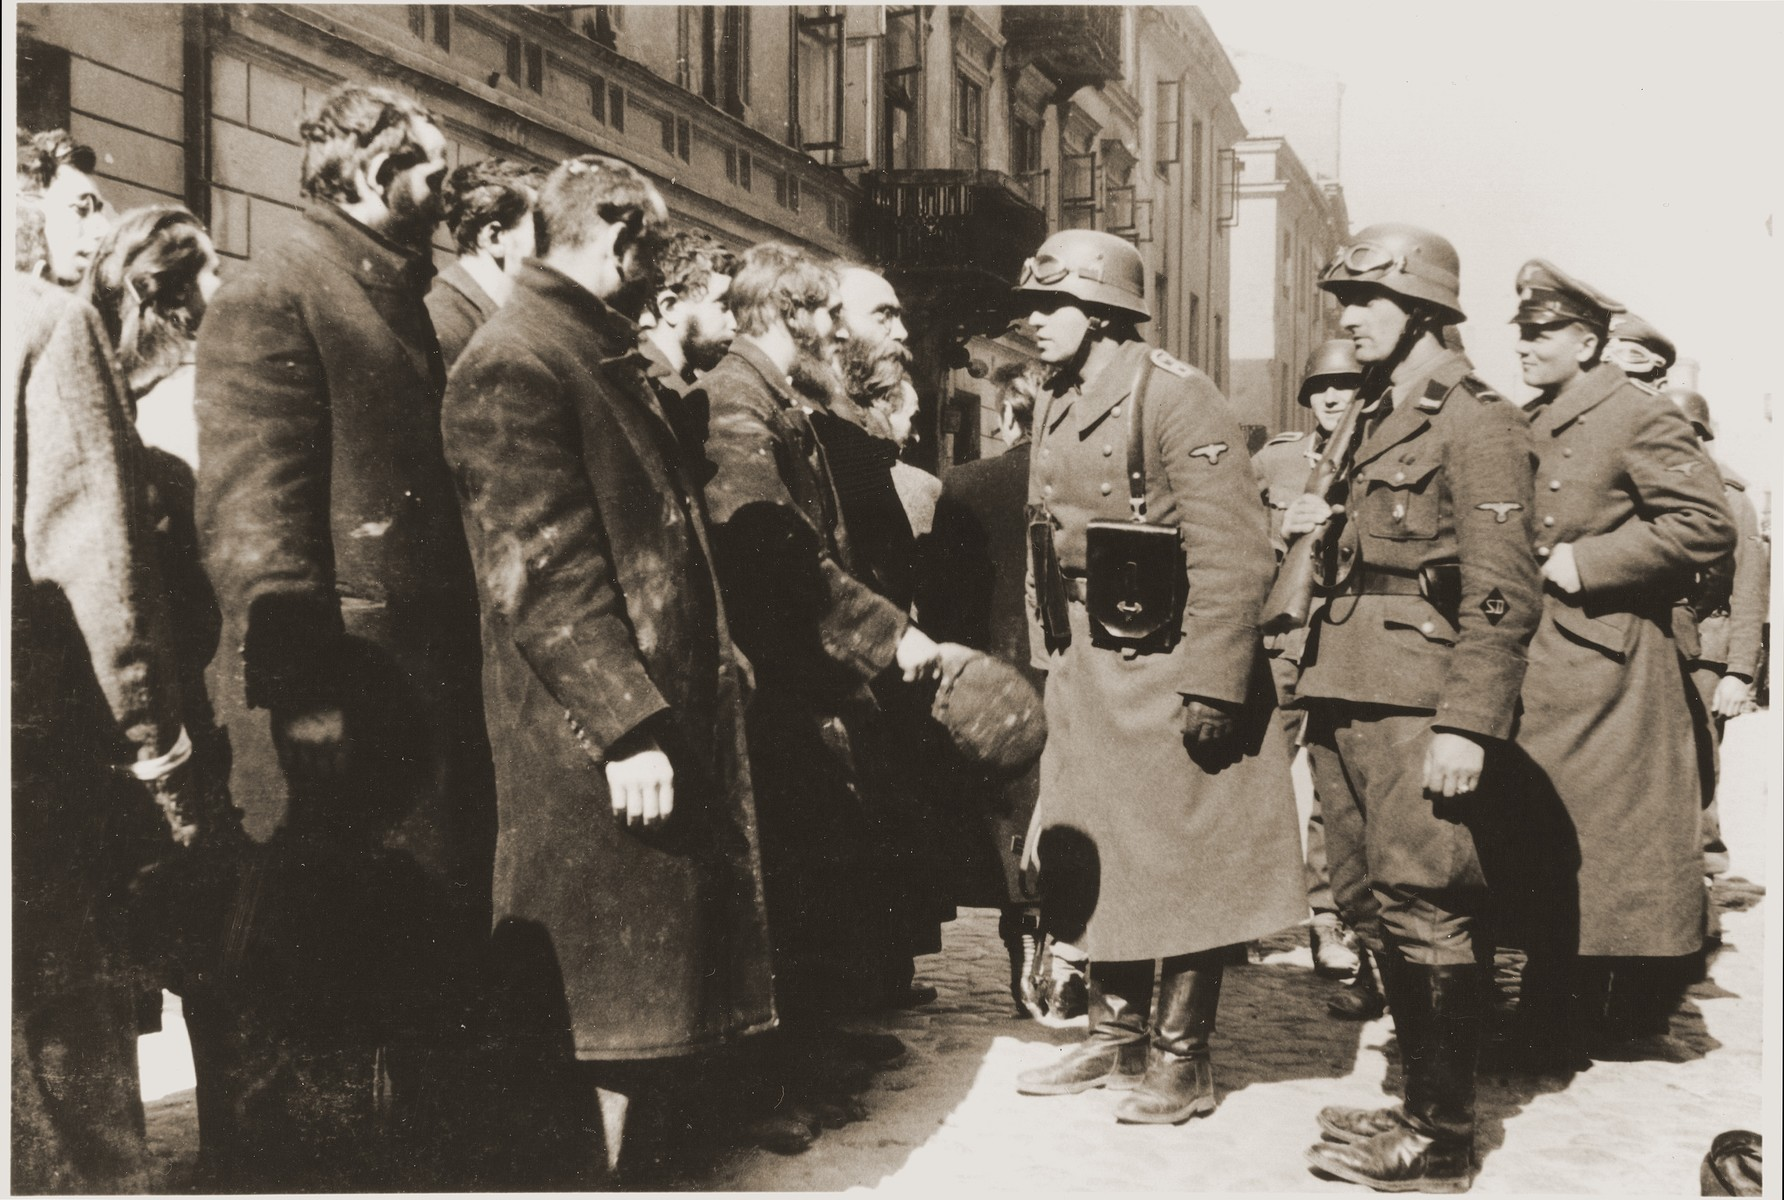 "An SS Sergeant (Oberscharfuehrer) interrogates religious Jews captured during the suppression of the Warsaw ghetto uprising.  The original German caption reads: ""Jewish rabbis.""  Among those pictured is Rabbi Heschel Rappaport.  Original caption from donated photograph reads:  ""The following pictures are copies of the book conaning the report of the German commander who was responsible for cleaning out that ghetto in Warsaw, Poland.  This report, in the form of a leather bound book, was presented as evidence by the U.S. prosecution, Maj. Frank Walsh, at the international tribunal trials at Nurnberg, Germany."""